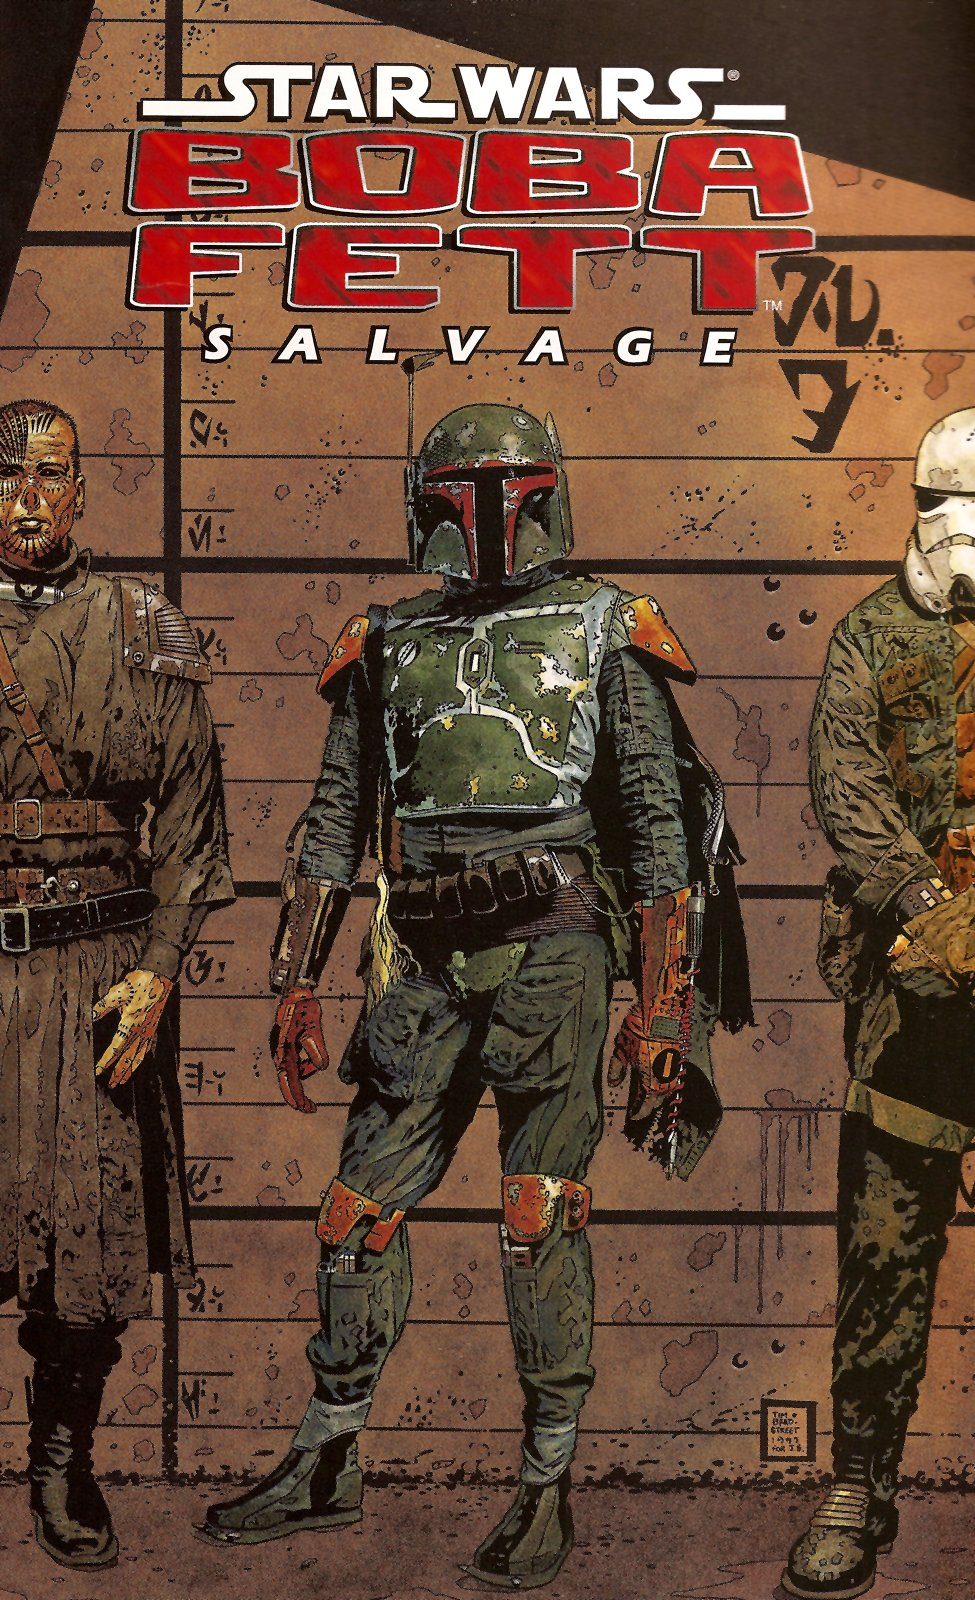 Star Wars Boba Fett Salvage A1 Comix Comic Book Database